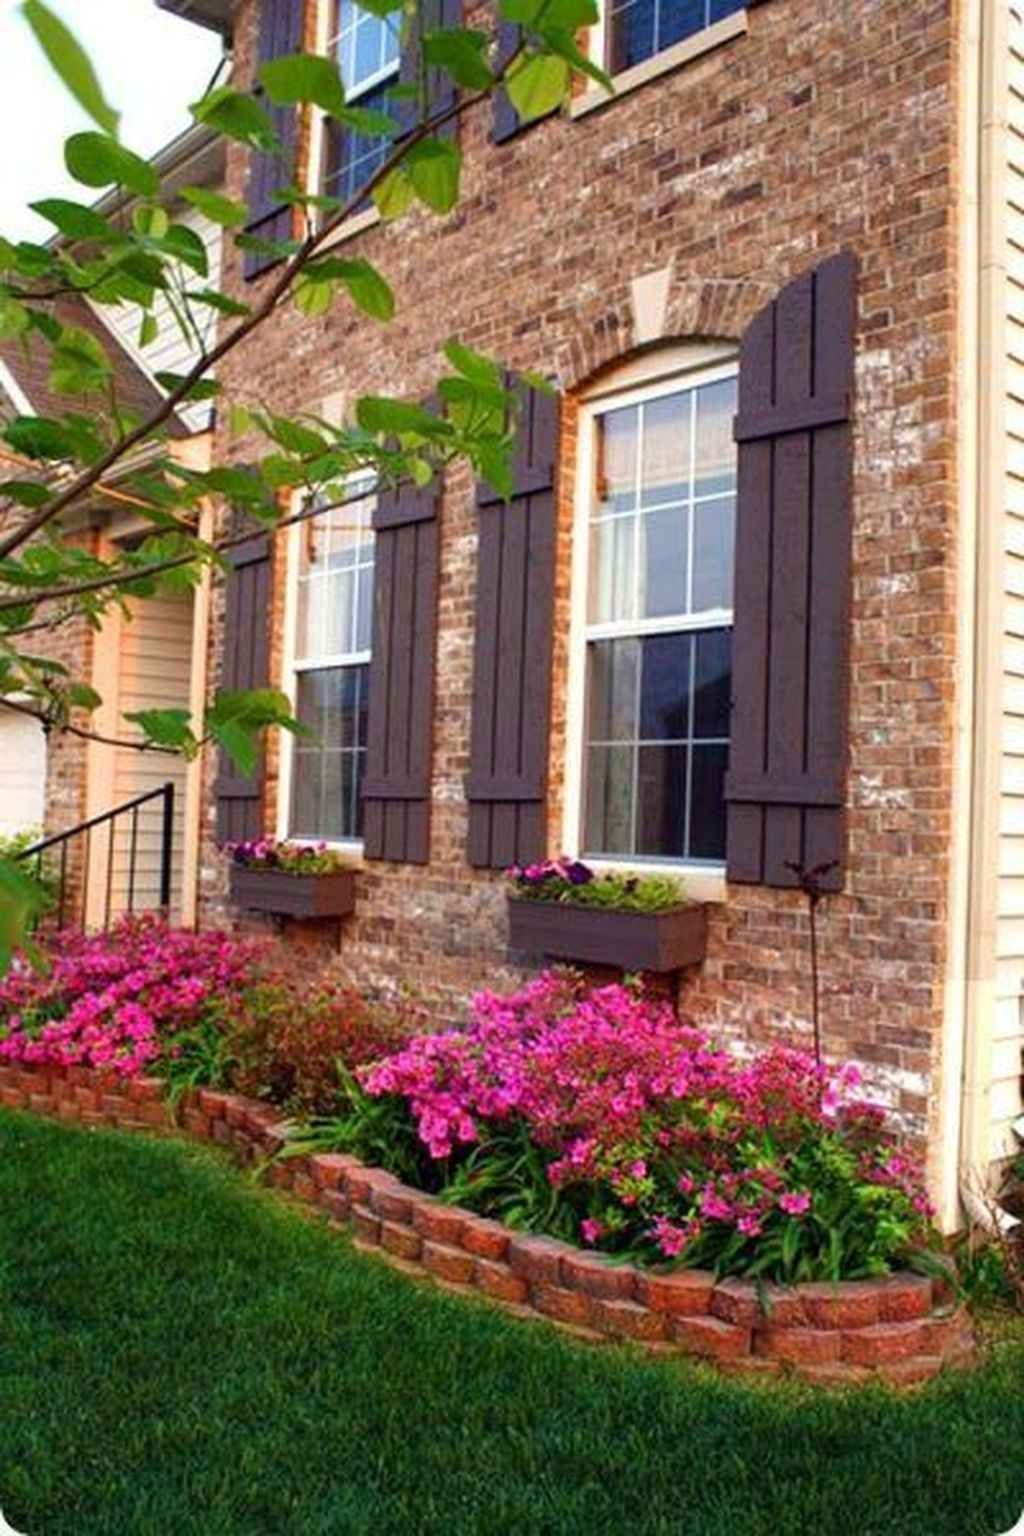 80 Fresh and Beautiful Front Yard Flowers Garden Landscaping Ideas With images   Flower bed ...